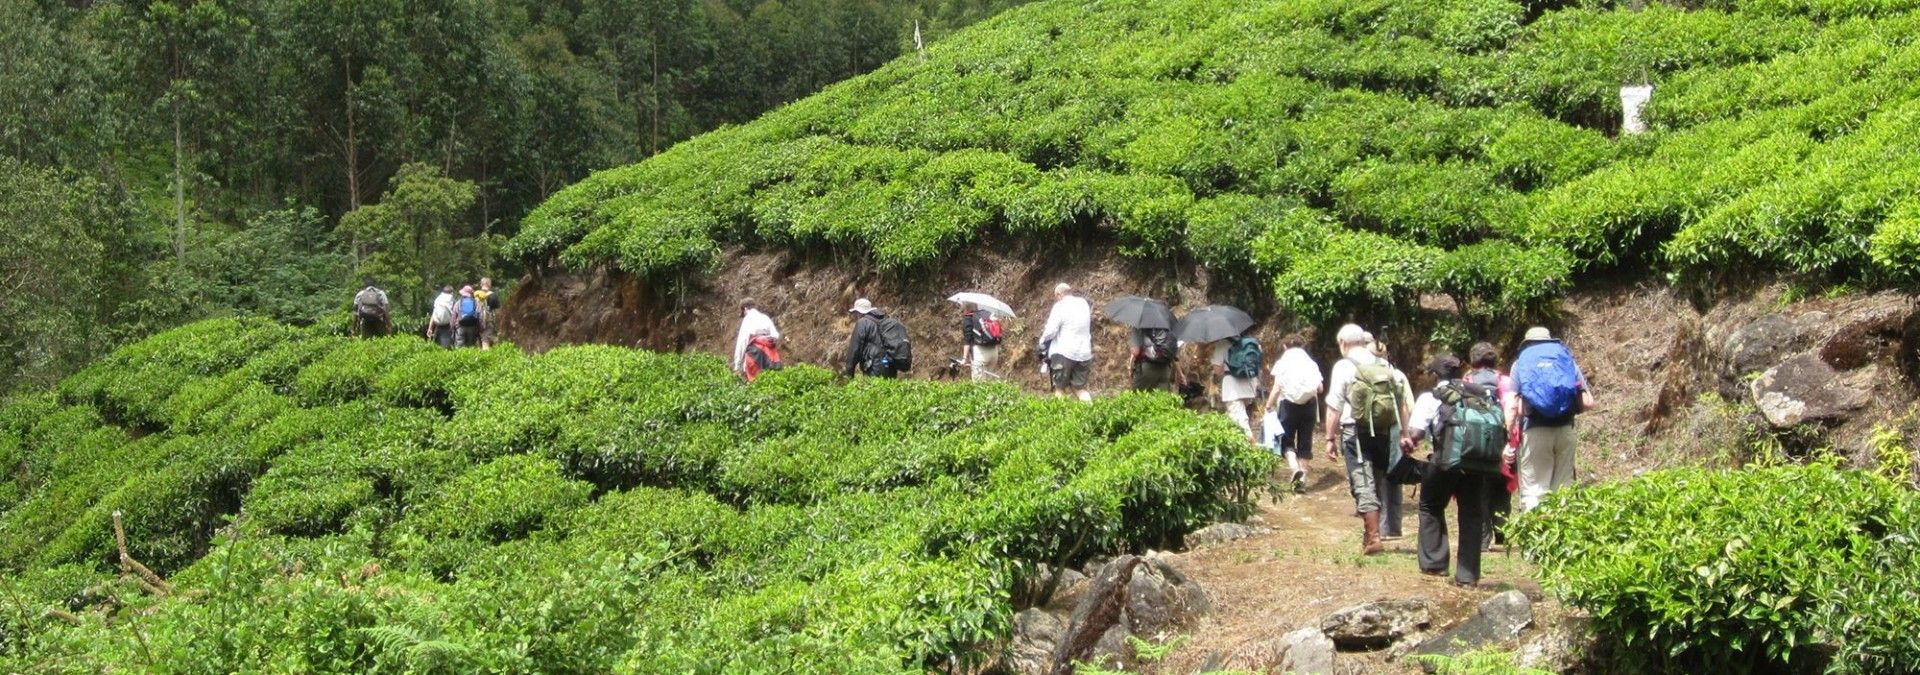 Trekking through tea plantations